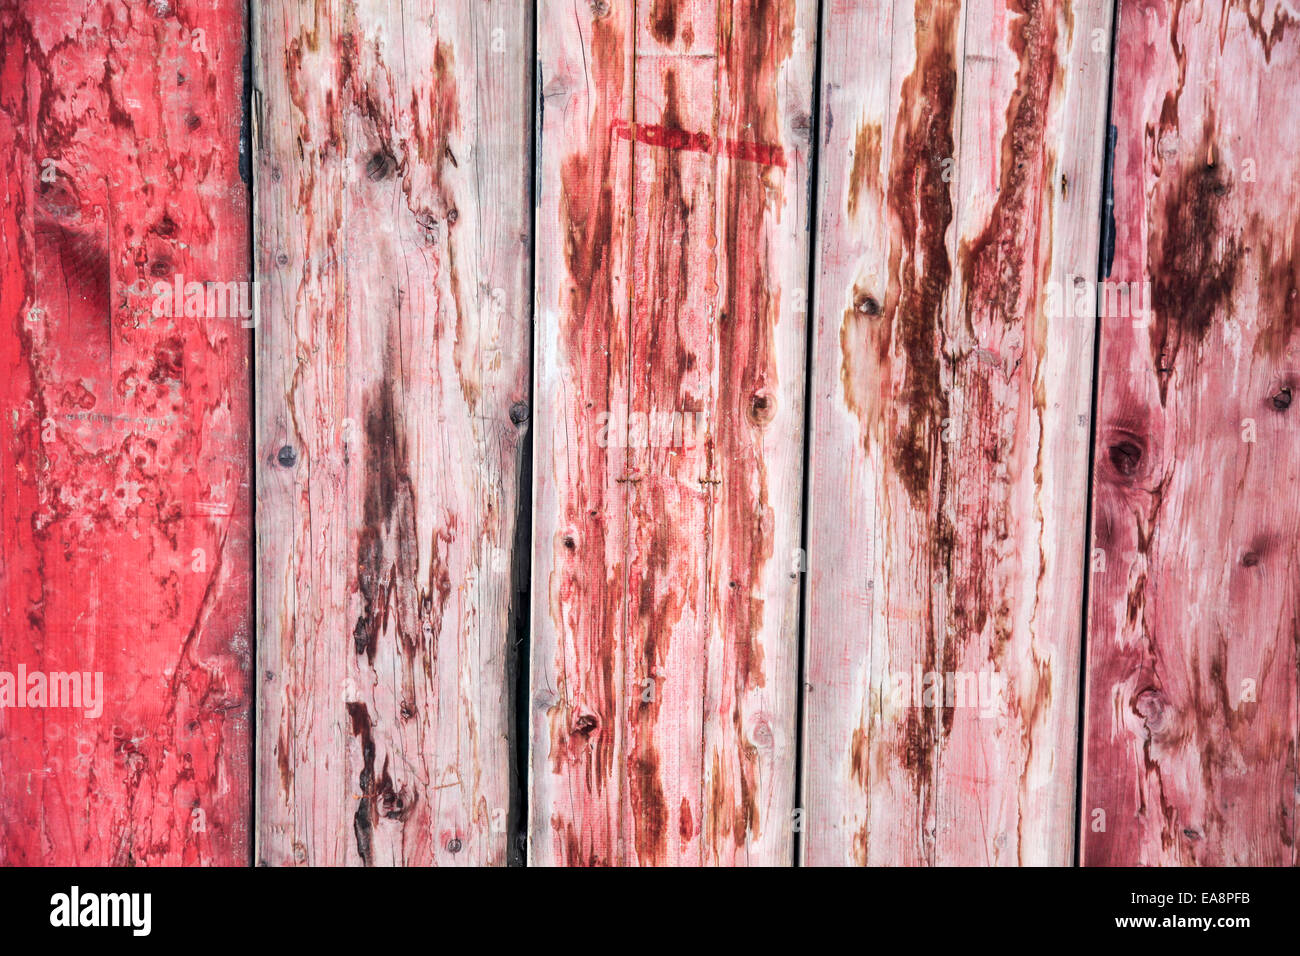 Abstract wood background with faded red paint - Stock Image